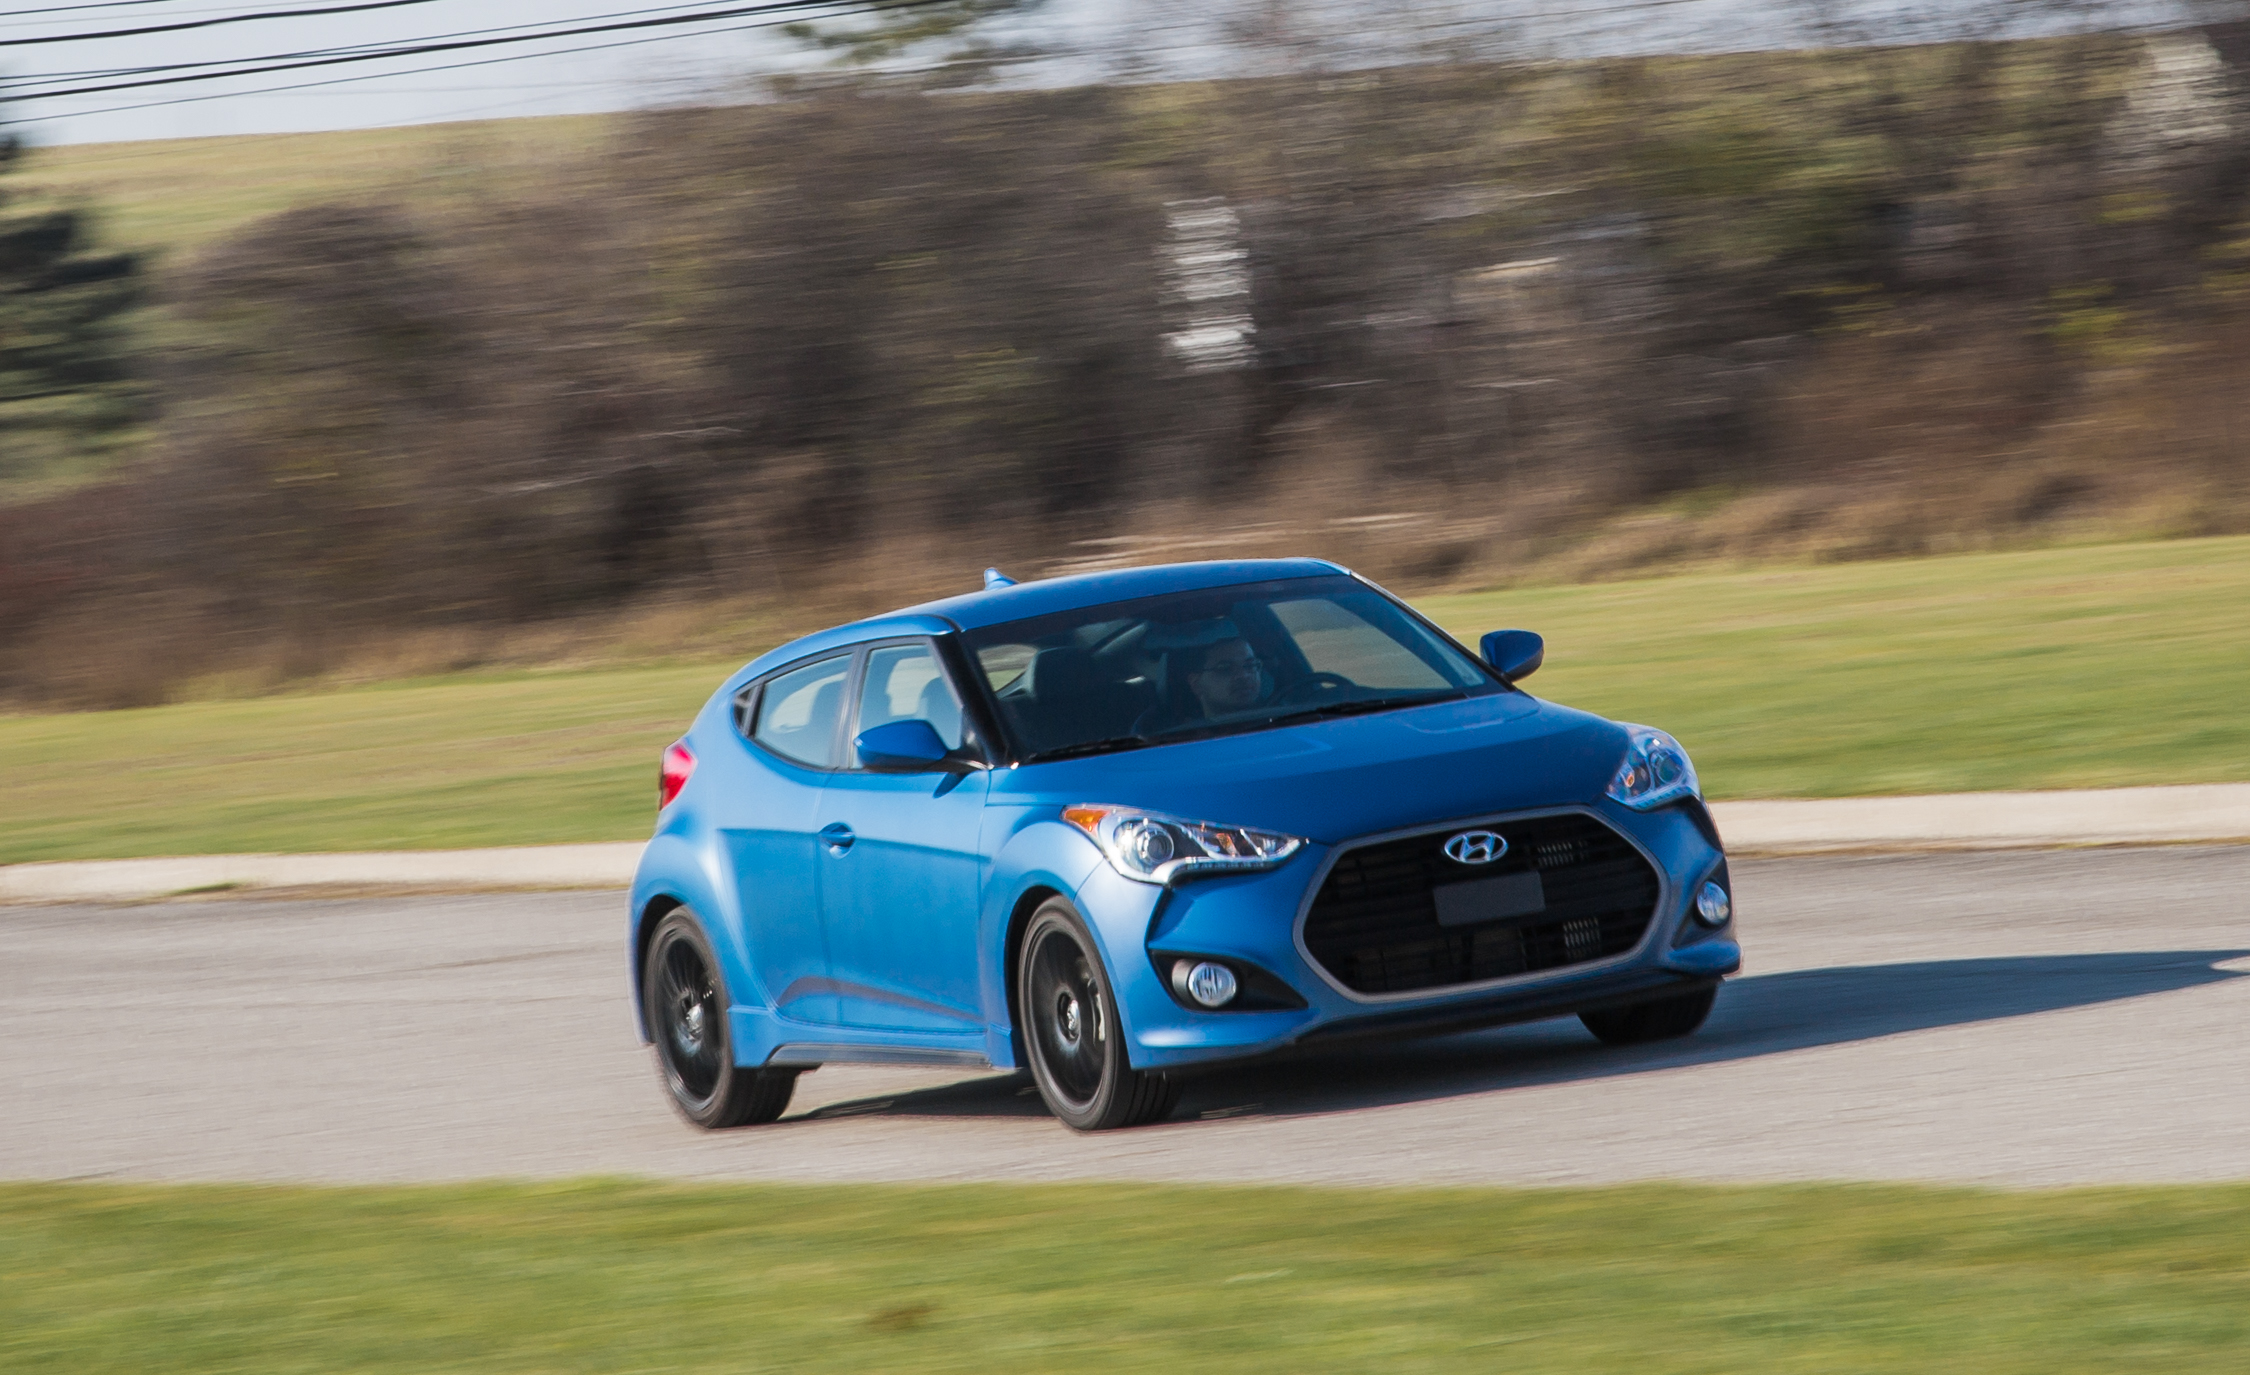 2016 hyundai veloster rally edition 1 6l turbo reviews 9397 cars performance reviews and. Black Bedroom Furniture Sets. Home Design Ideas